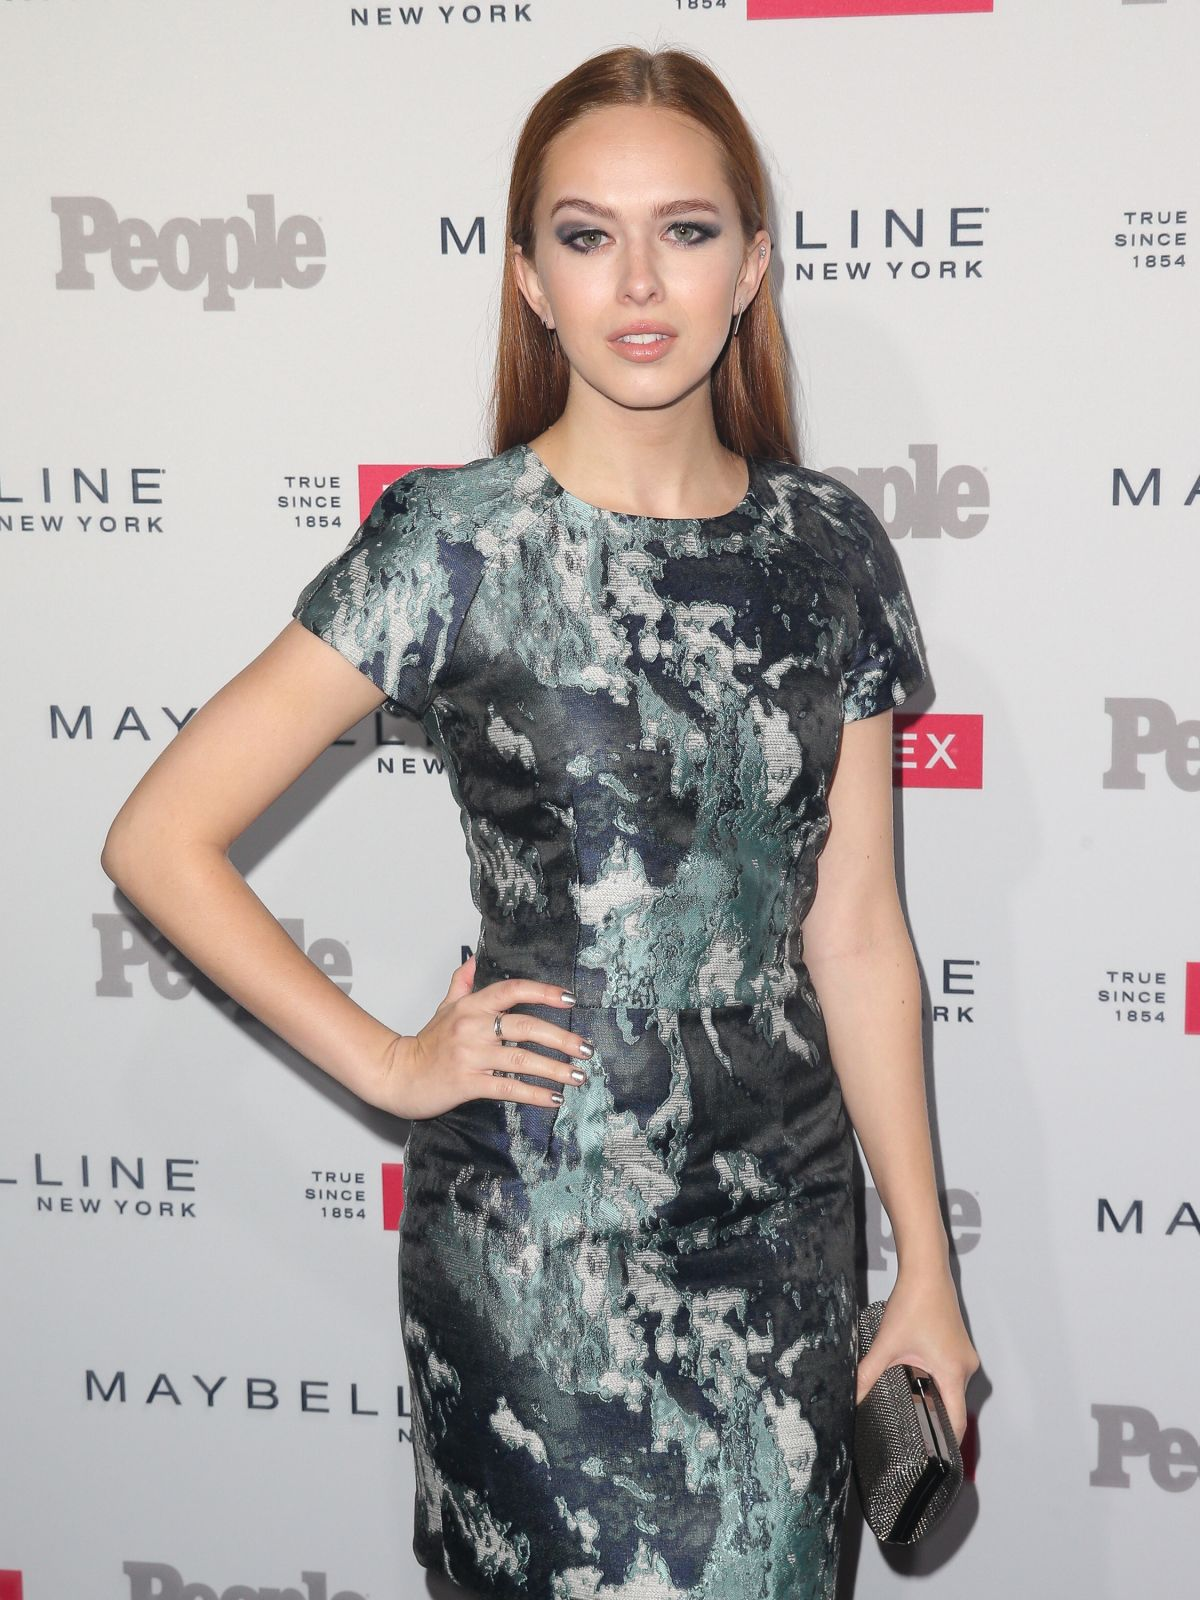 ELIZABETH MCLAUGHLIN at People's To Watch in West Hollywood 09/16/2015